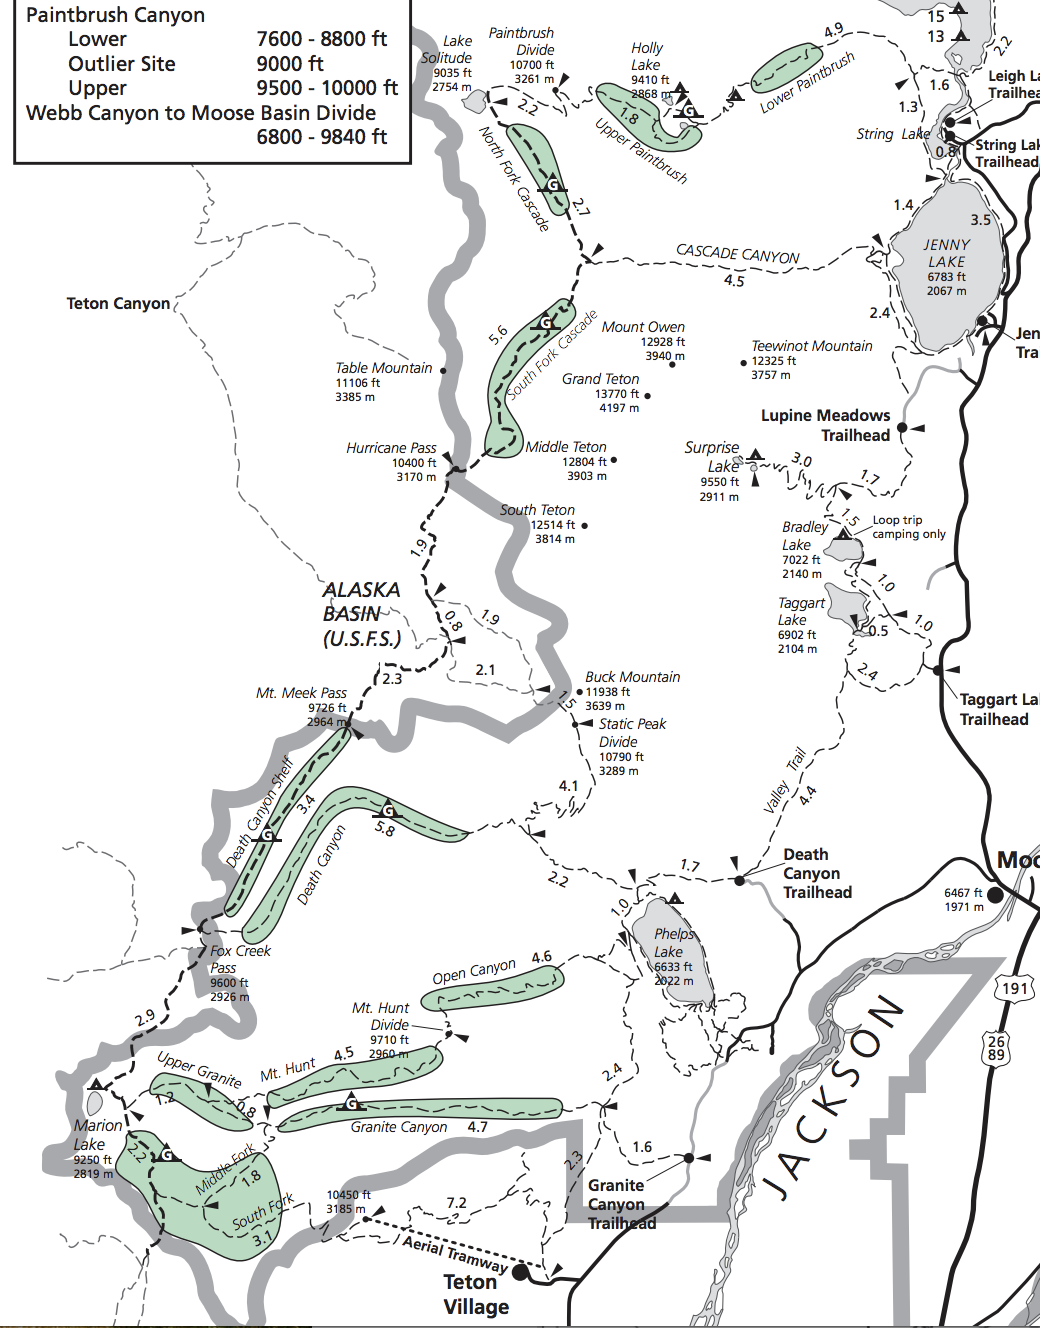 teton crest trail camping map, death canyon, death canyon shelf, fox creek pass, alaska basin, kit lake, granite canyon, north fork cascade canyon, south fork cascade canyon, holly lake, sunset lake, marion lake, upper paintbrush,